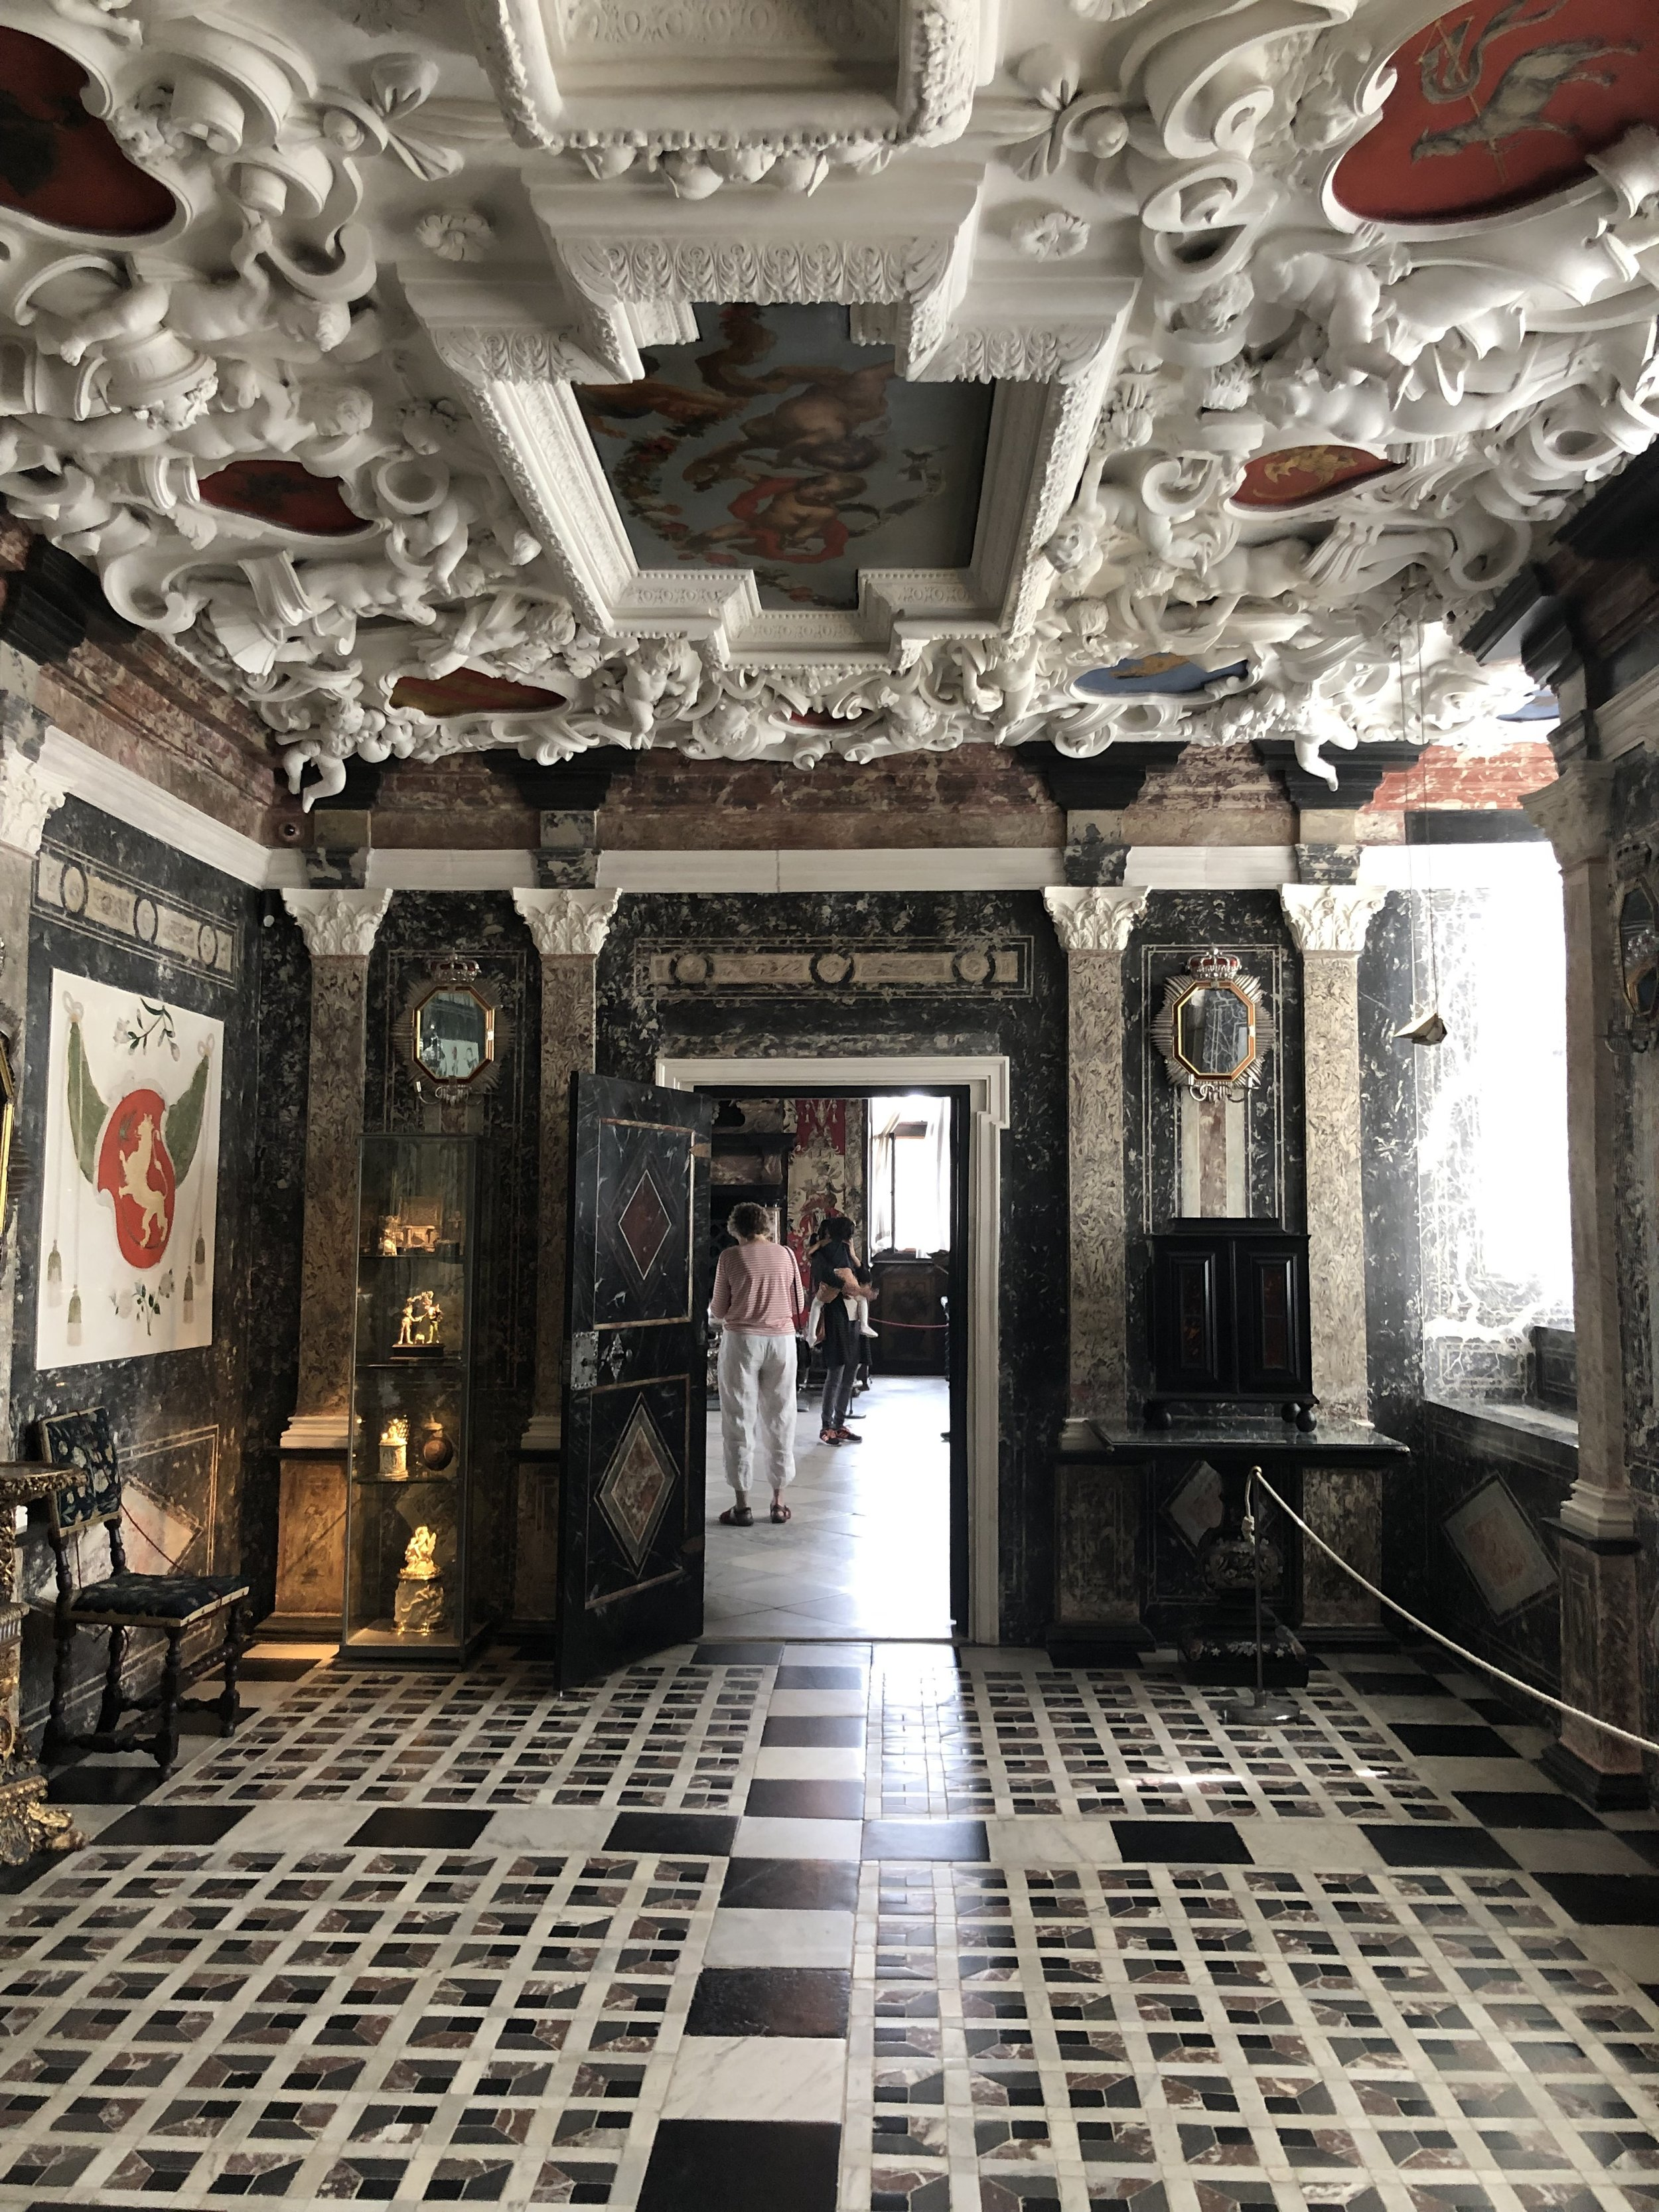 Just one of the many rooms in the palace that was intricately decorated with art work from floor to ceiling.